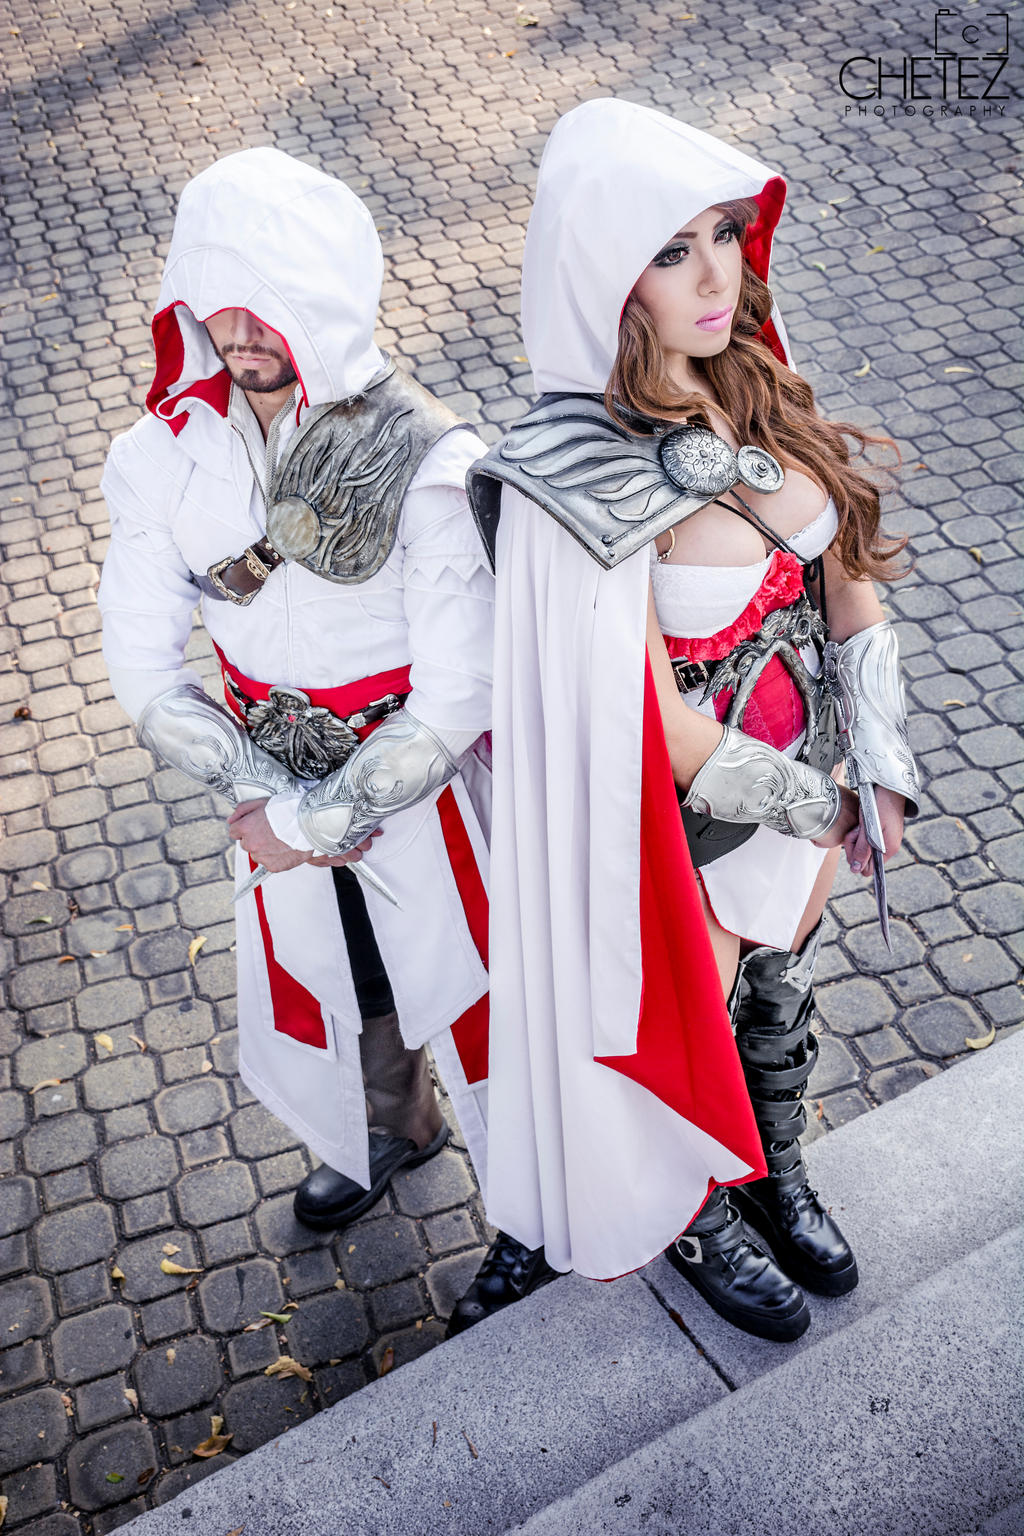 Ezio Auditore Cosplay Female And Male Version By